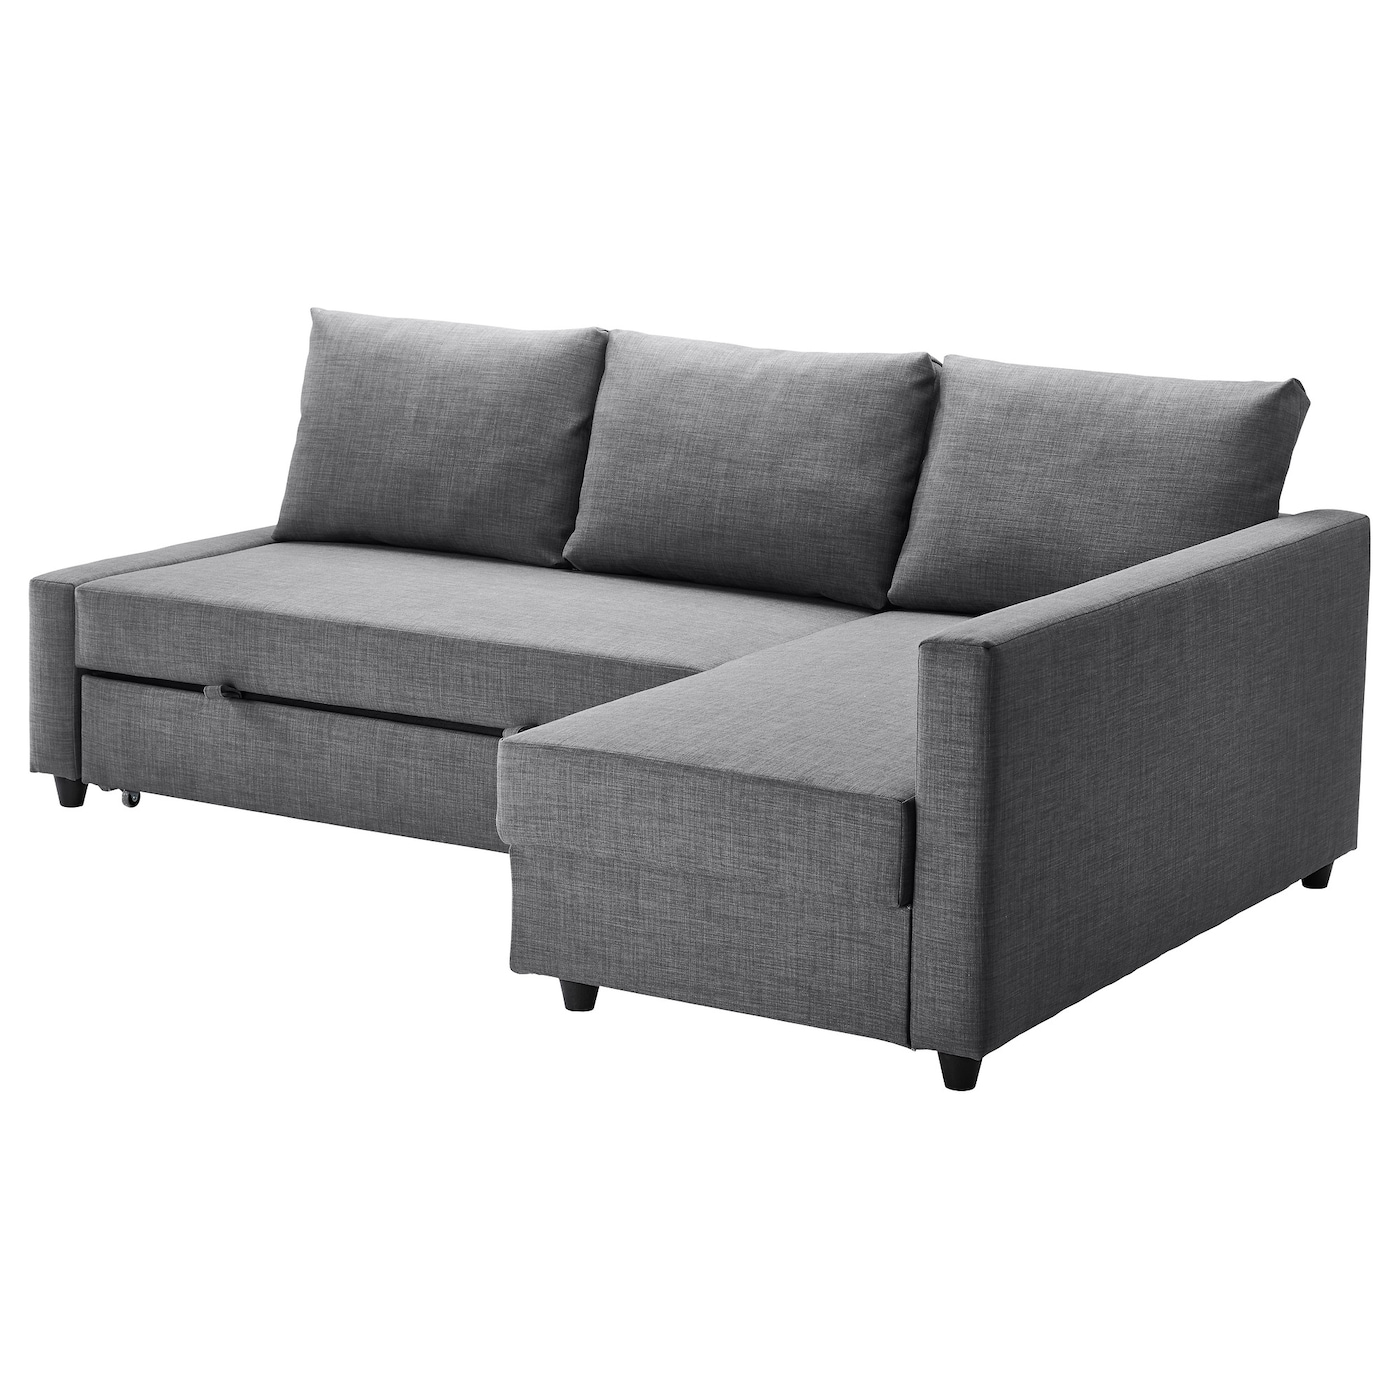 Friheten Corner Sofa Bed With Storage Skiftebo Dark Gray Ikea